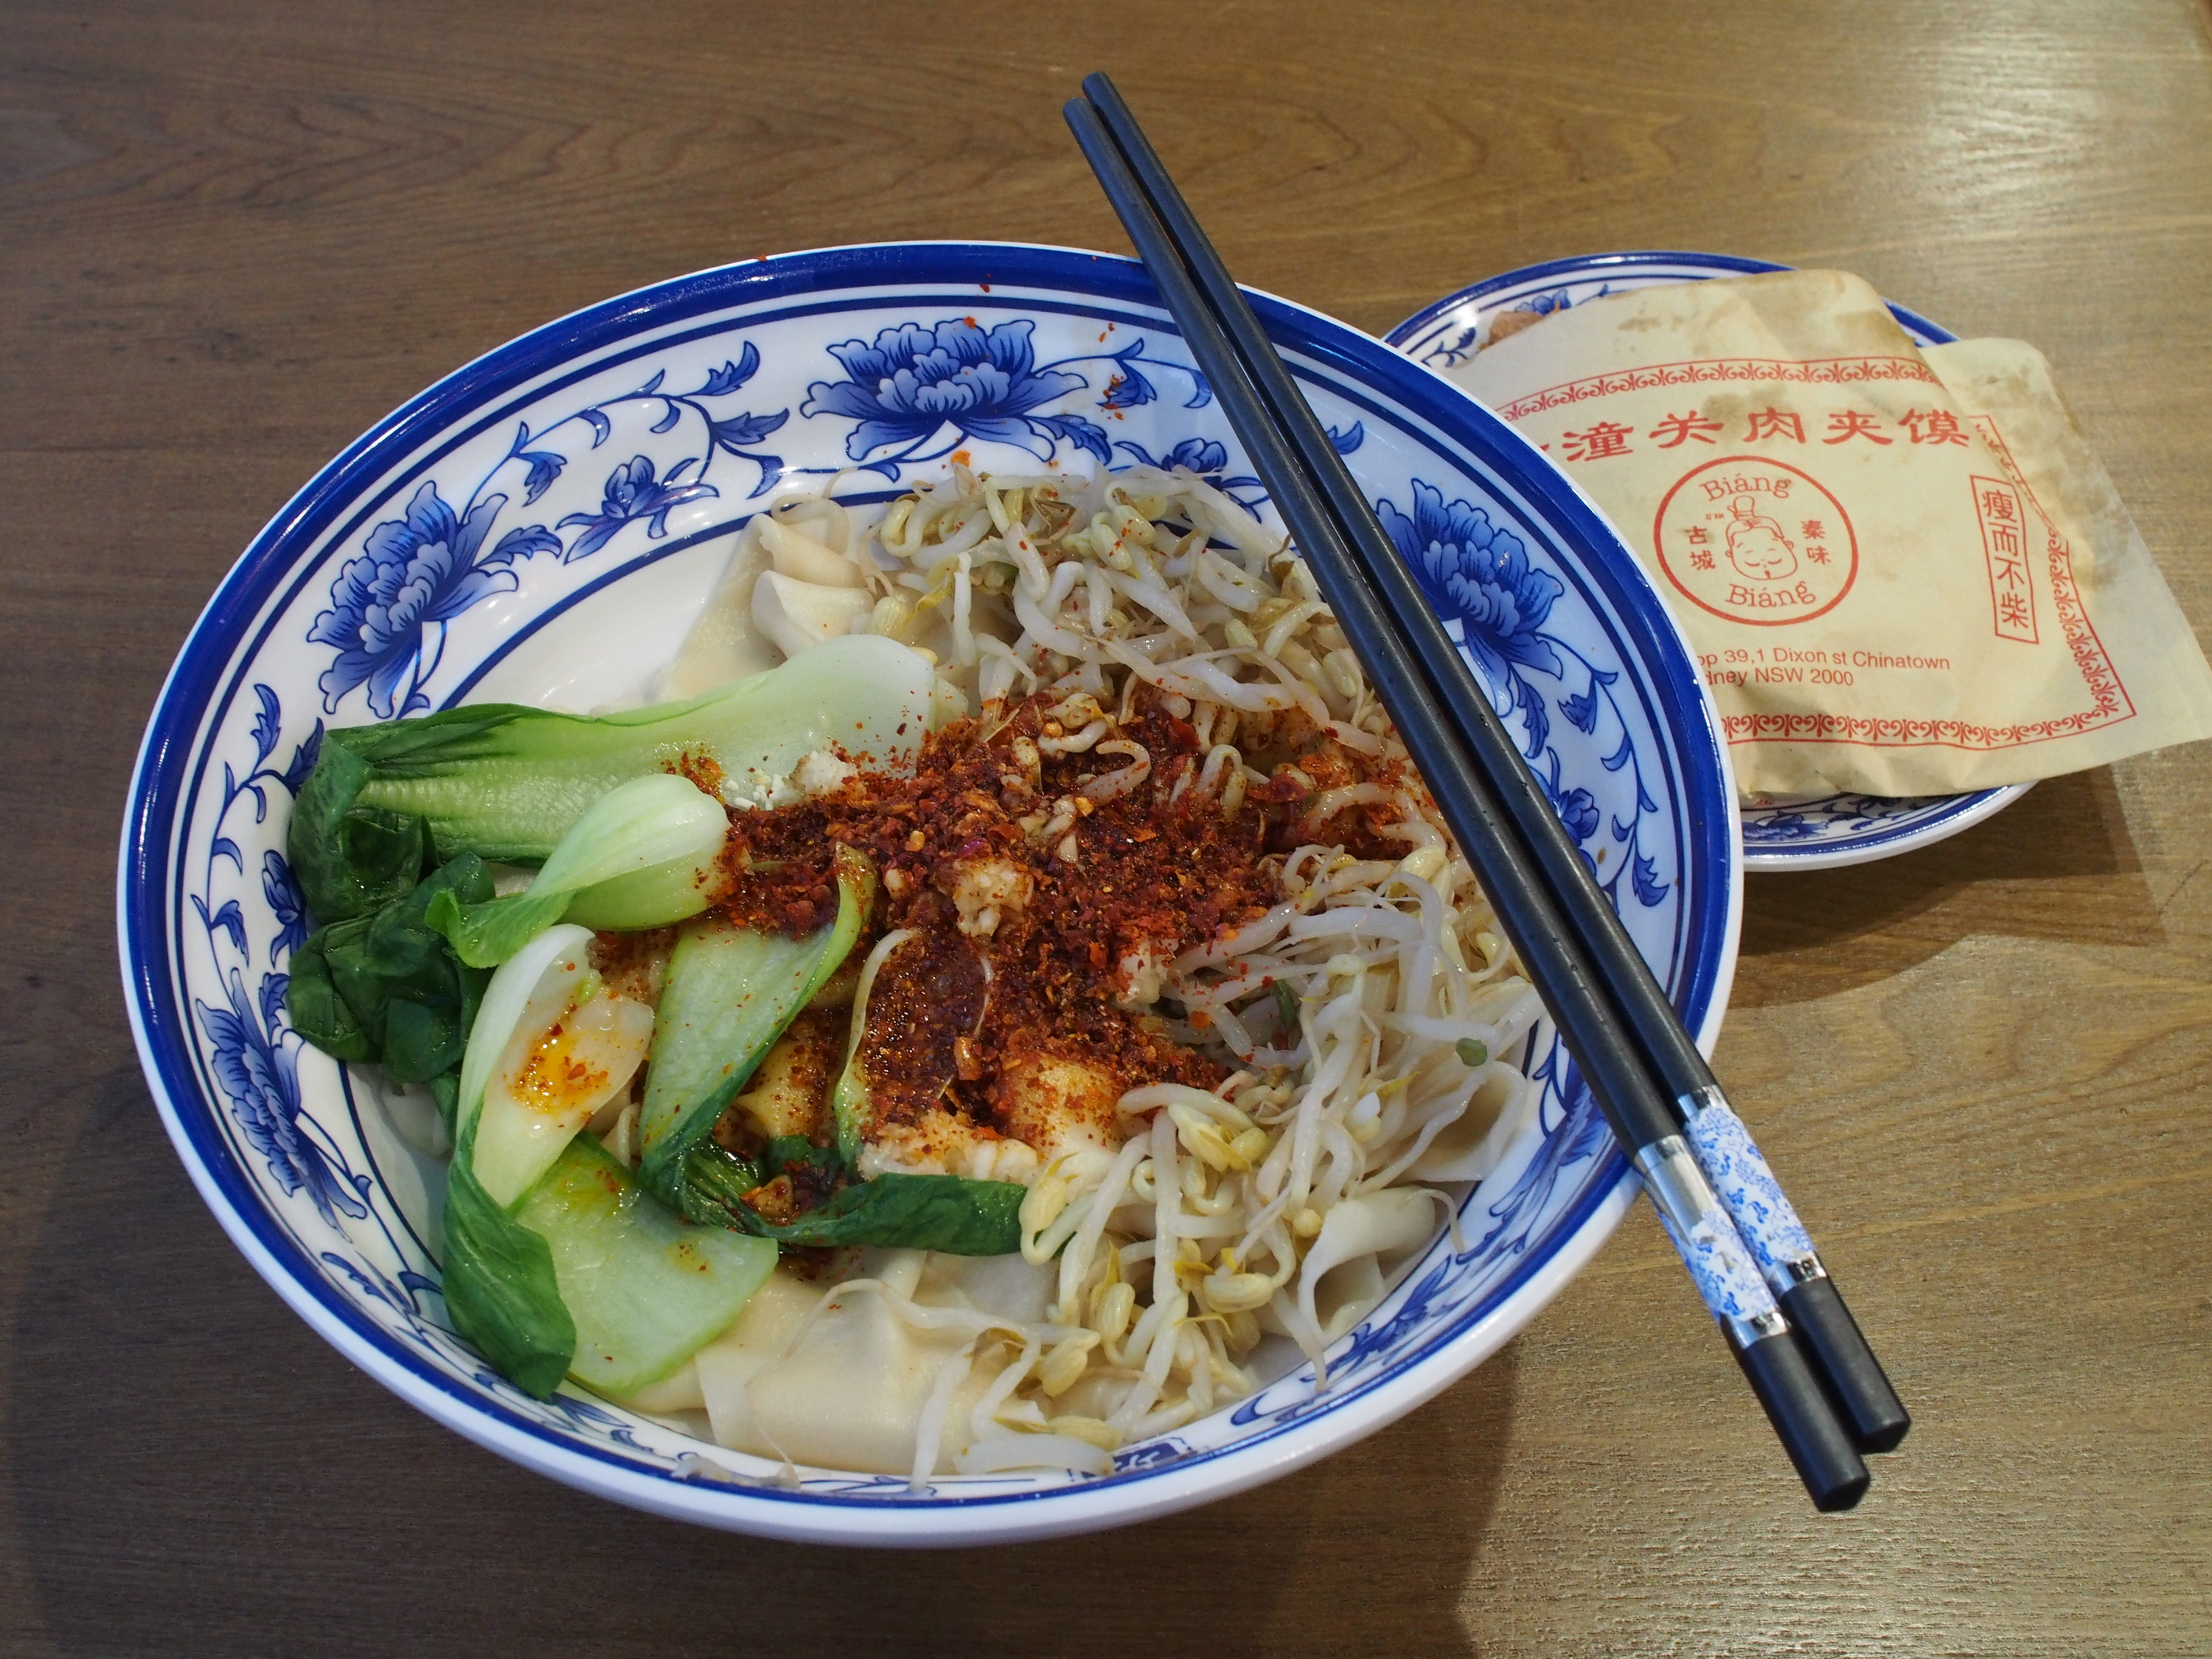 A bowl of Chinese noodles